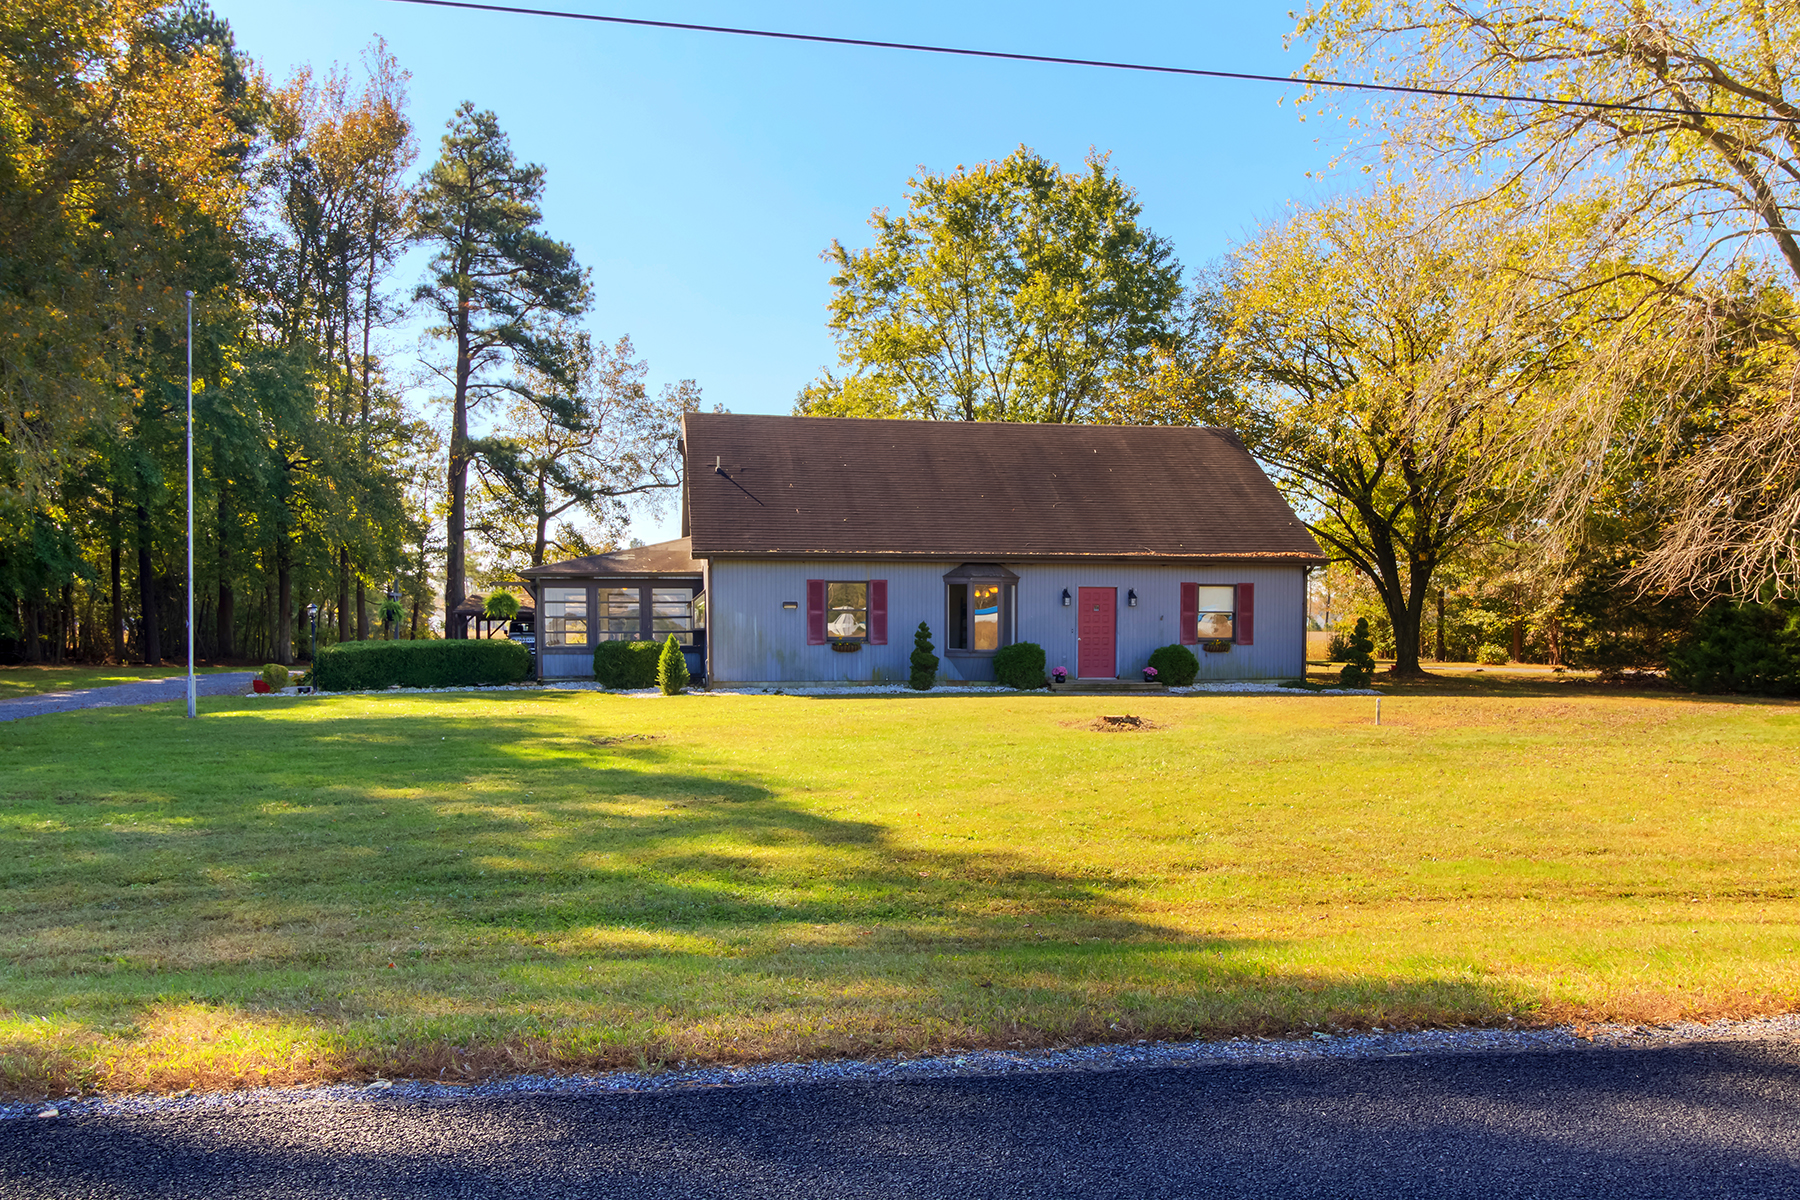 Additional photo for property listing at 32106 Lynch Rd , Selbyville, DE 19975 32106  Lynch Rd, 赛尔比维尔, 特拉华州 19975 美国